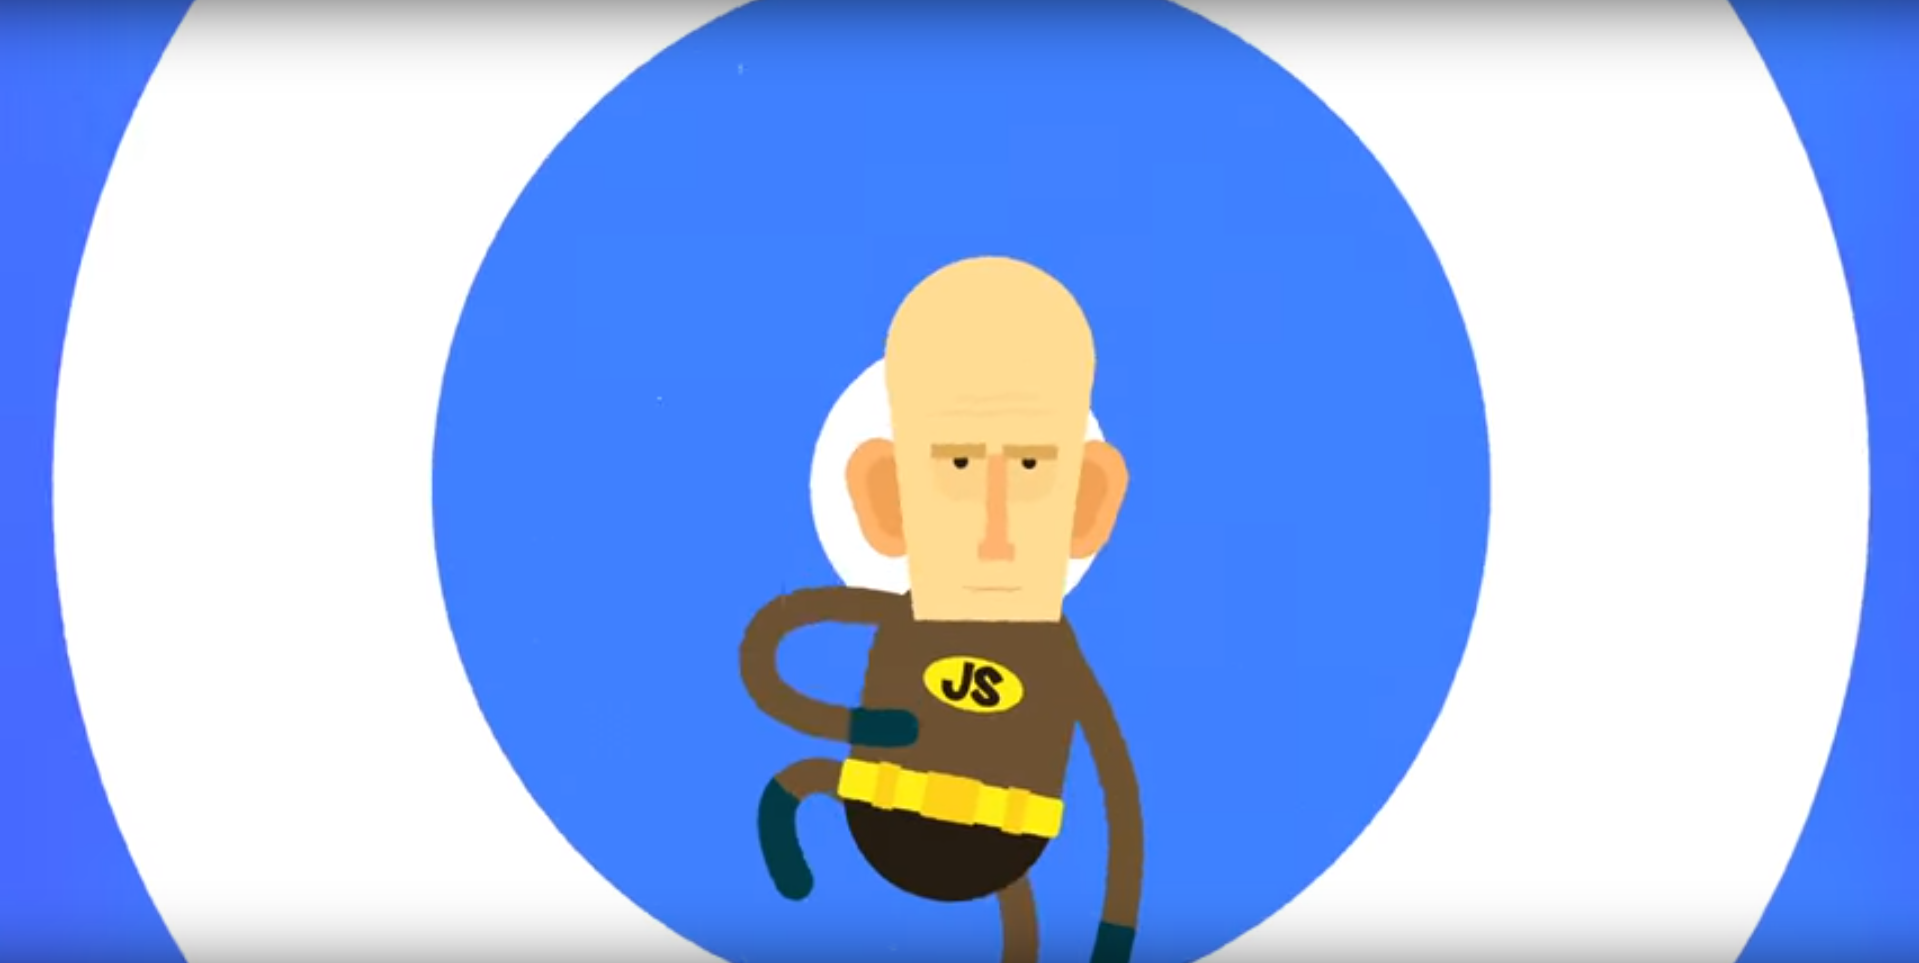 Jaap Stam dressed as Batman, as featured on a YouTube video.